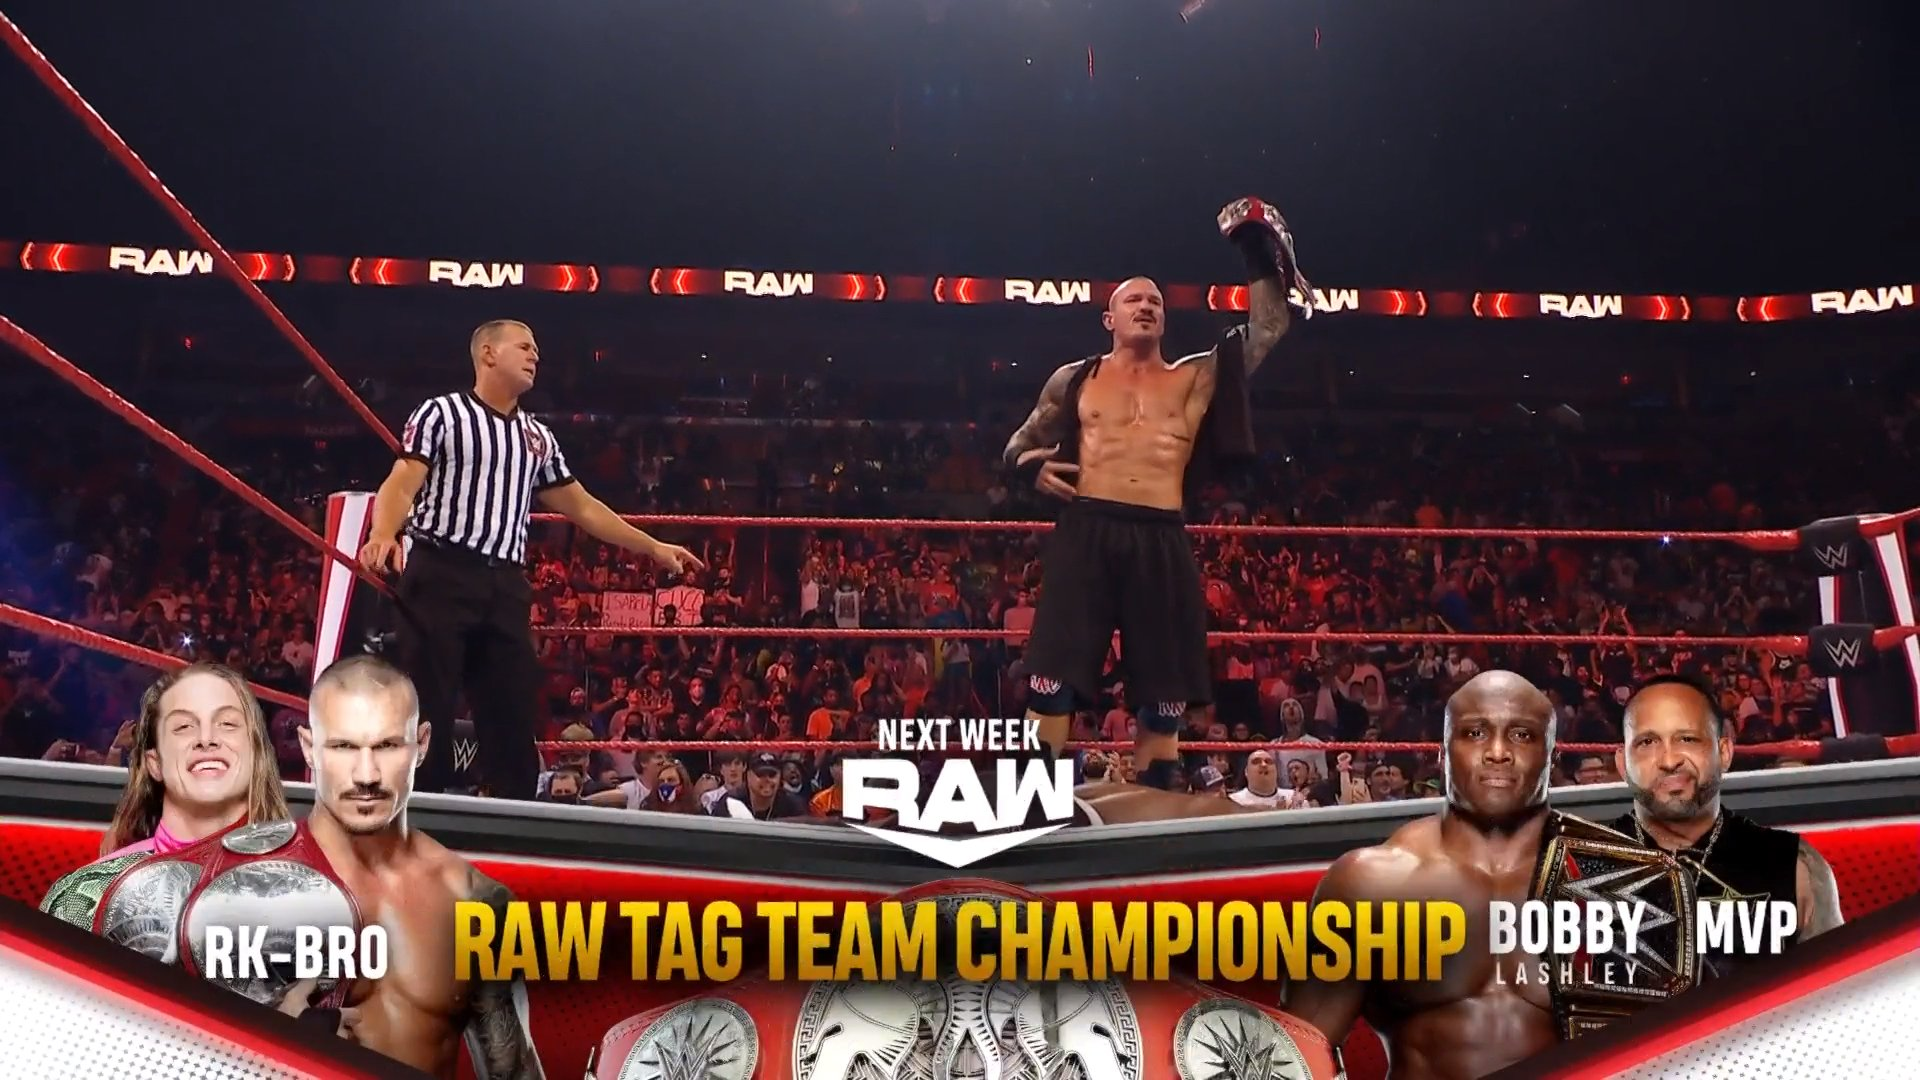 WWE Announces RAW Tag Team Titles Match For Next Week